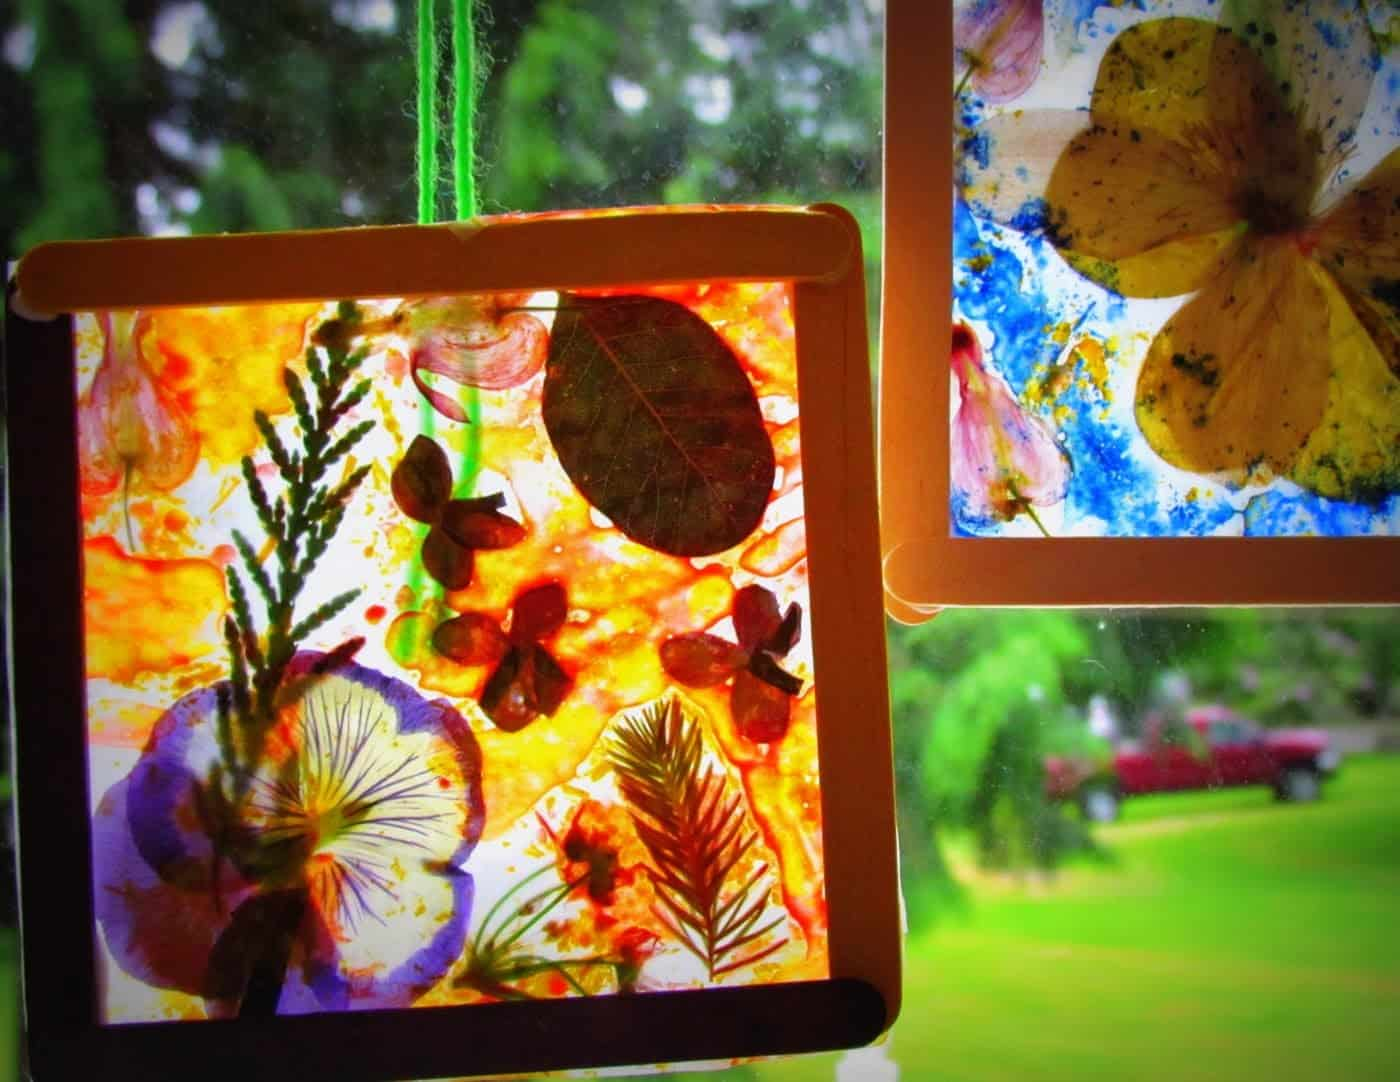 Dried flower and leaf stained glass